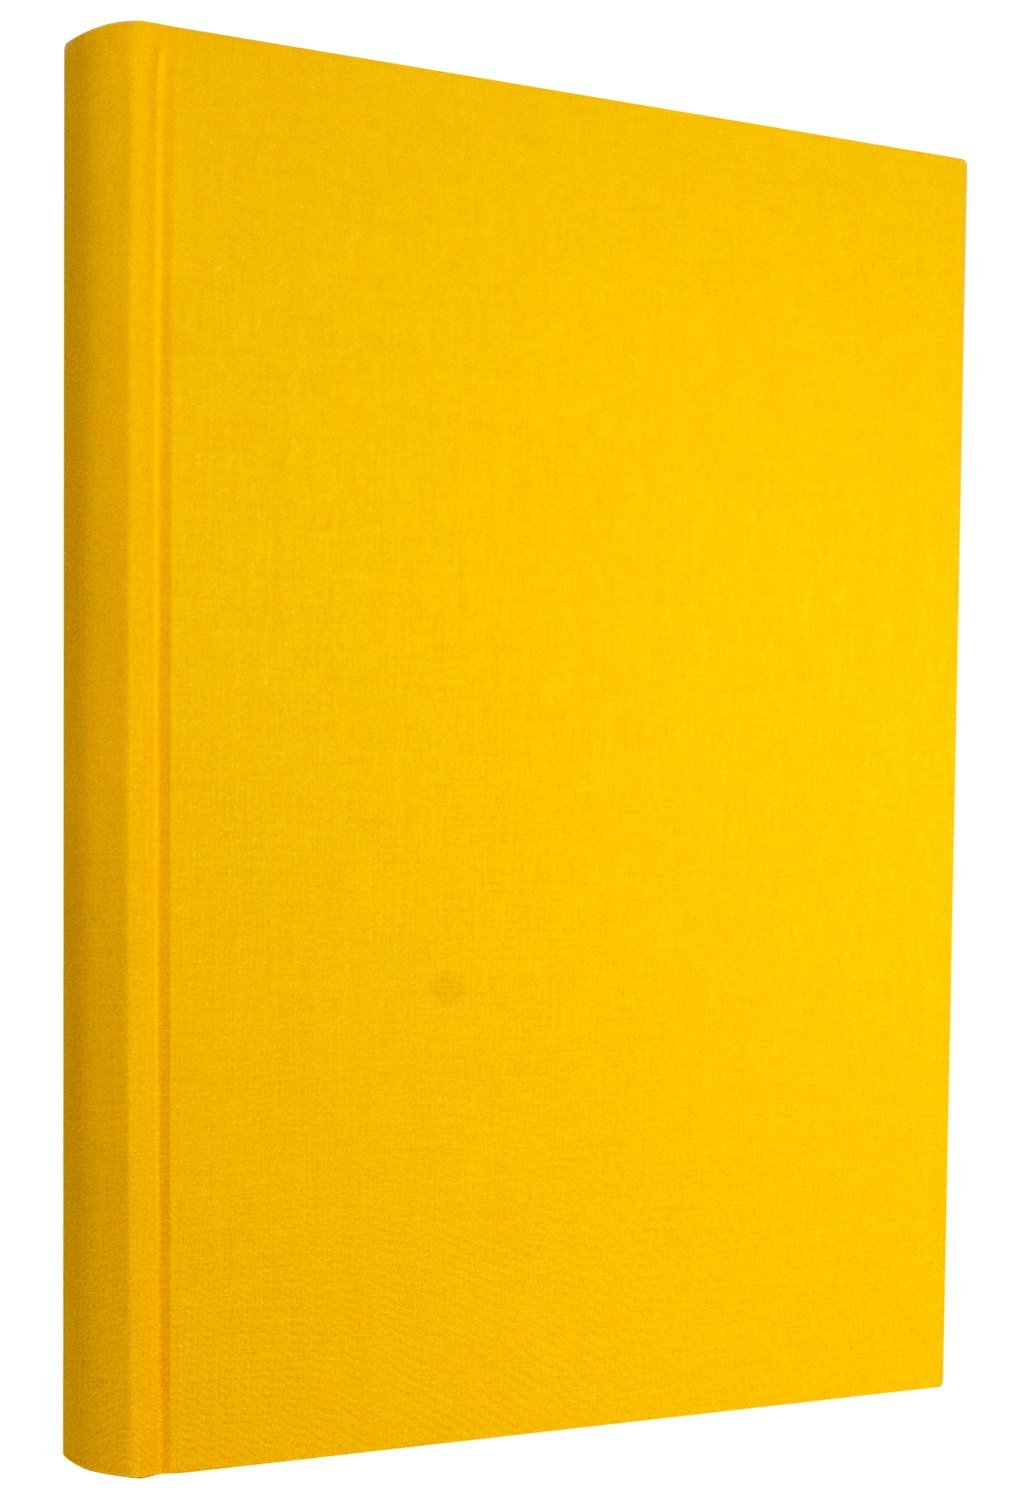 Yellow Cover Cookbook : Blank book cover bing images